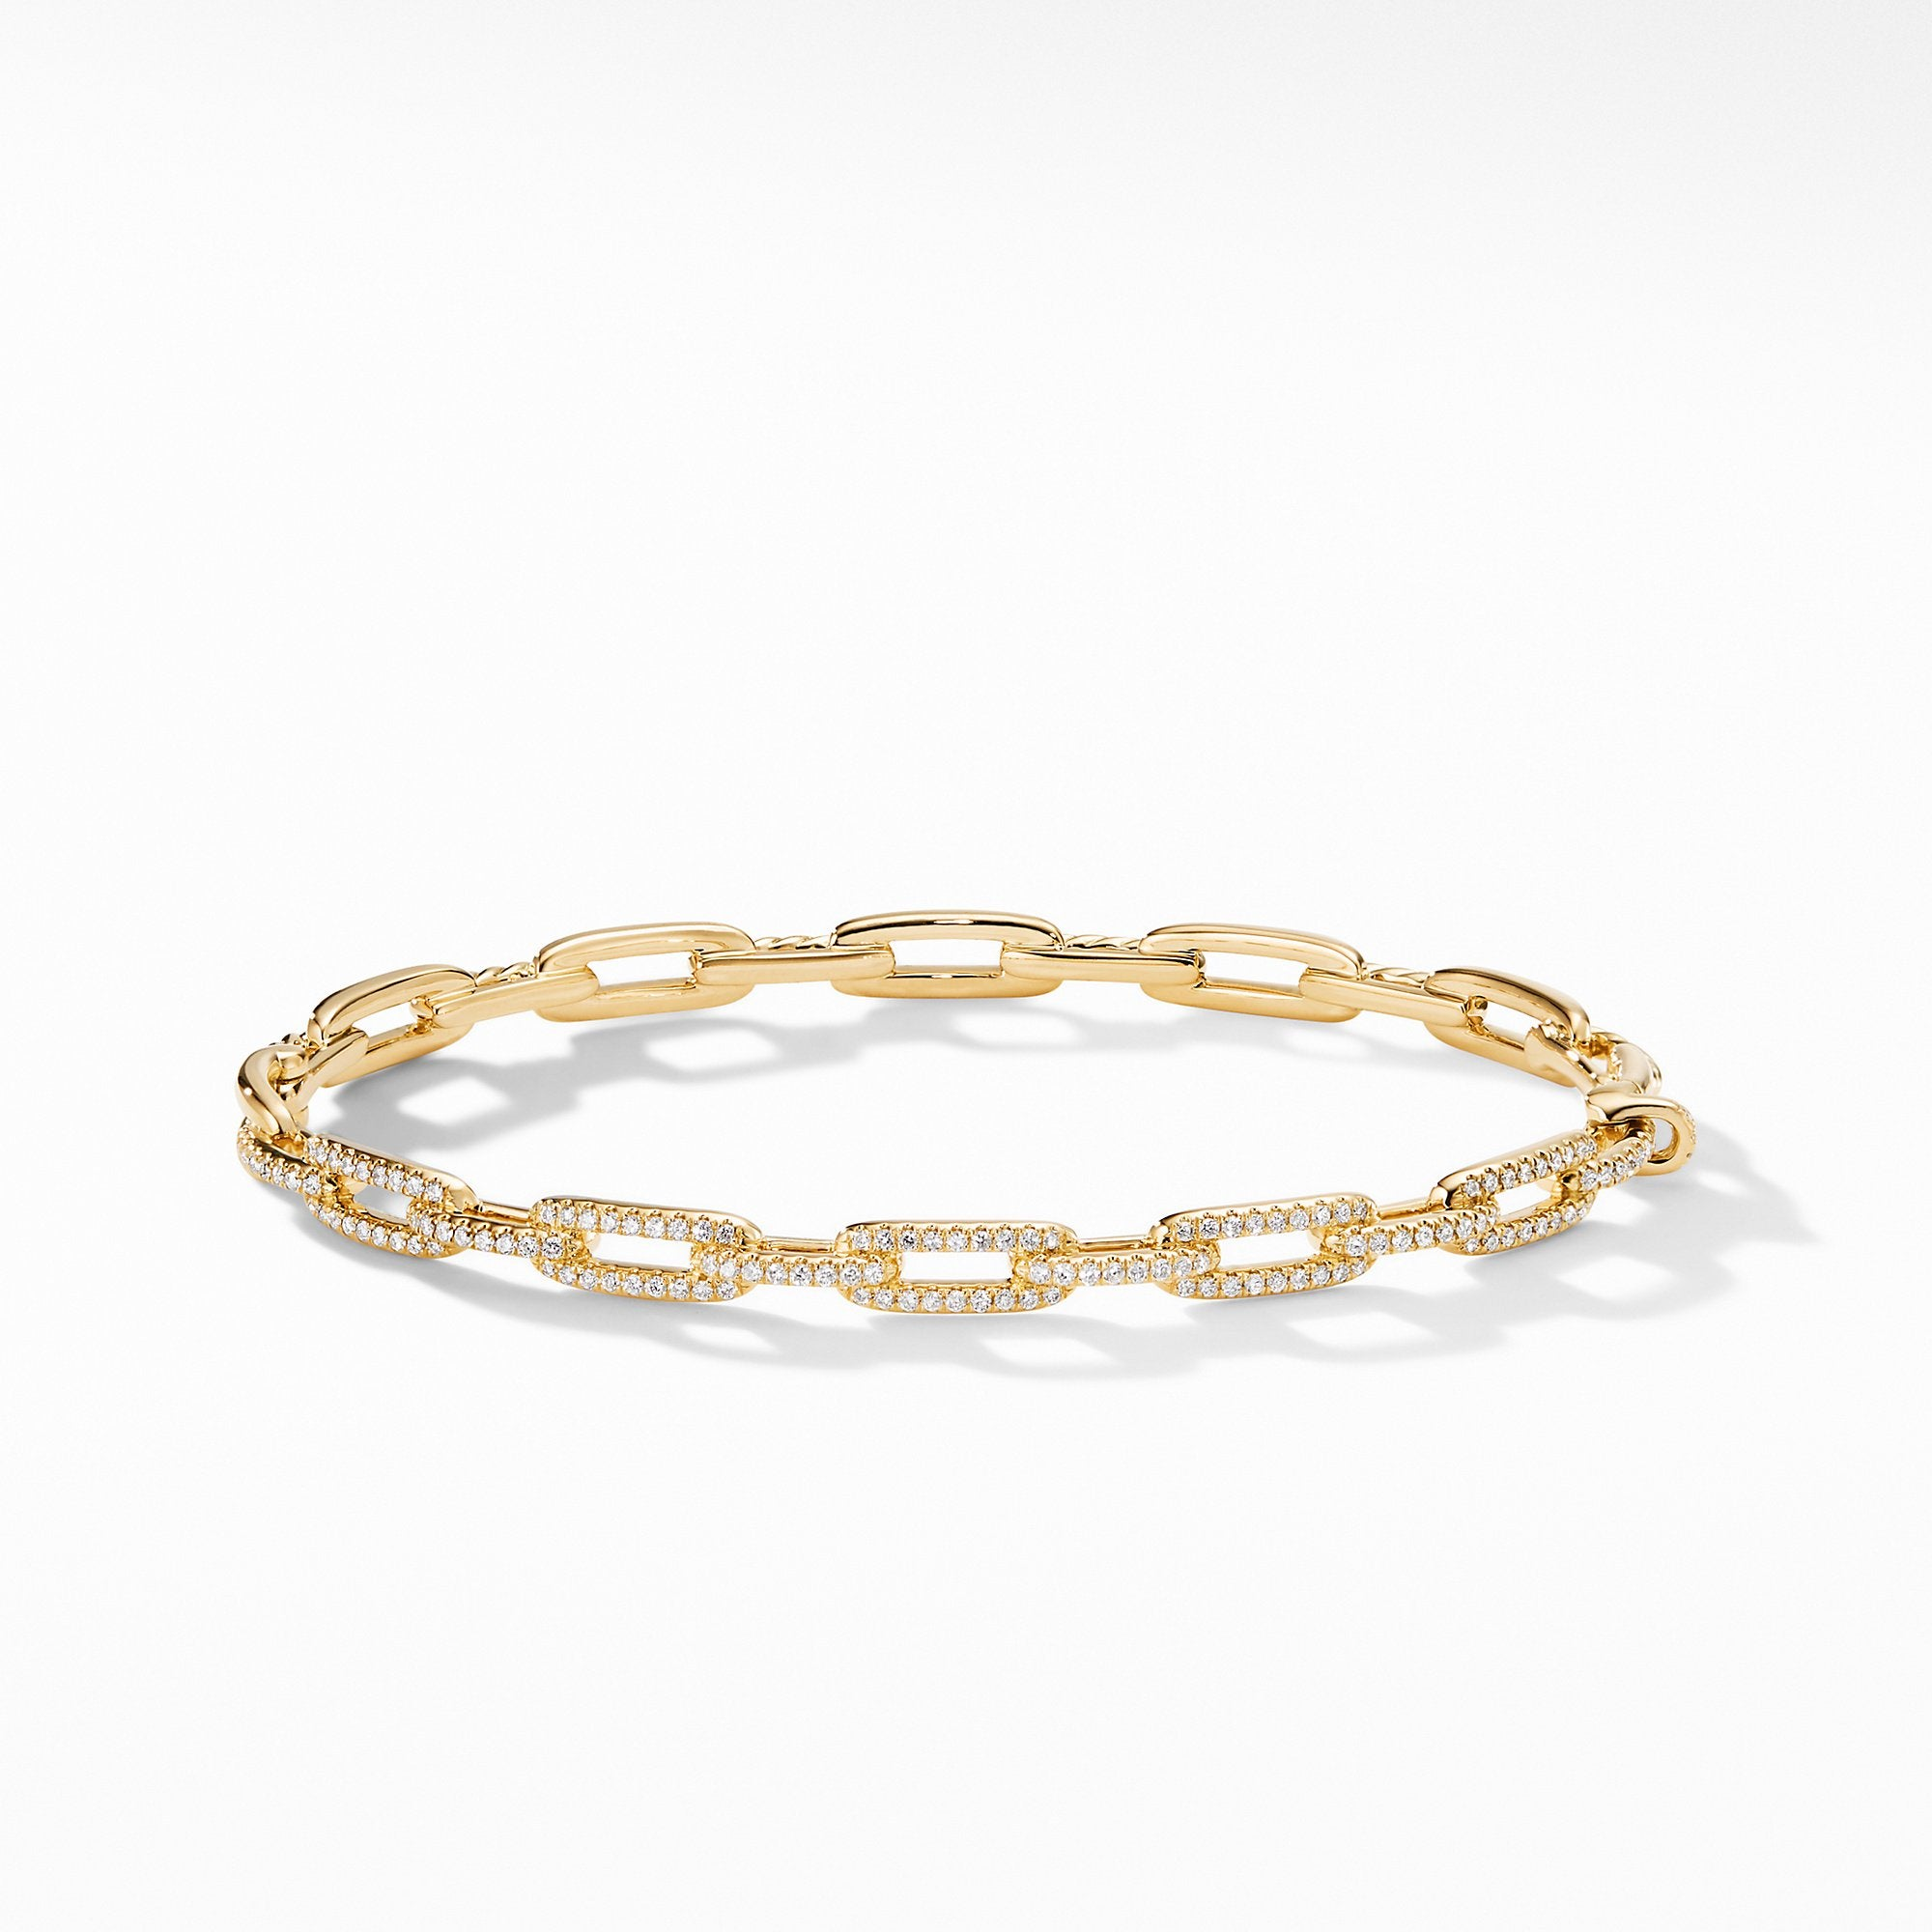 Stax Chain Link Bracelet with Diamonds in 18K Gold